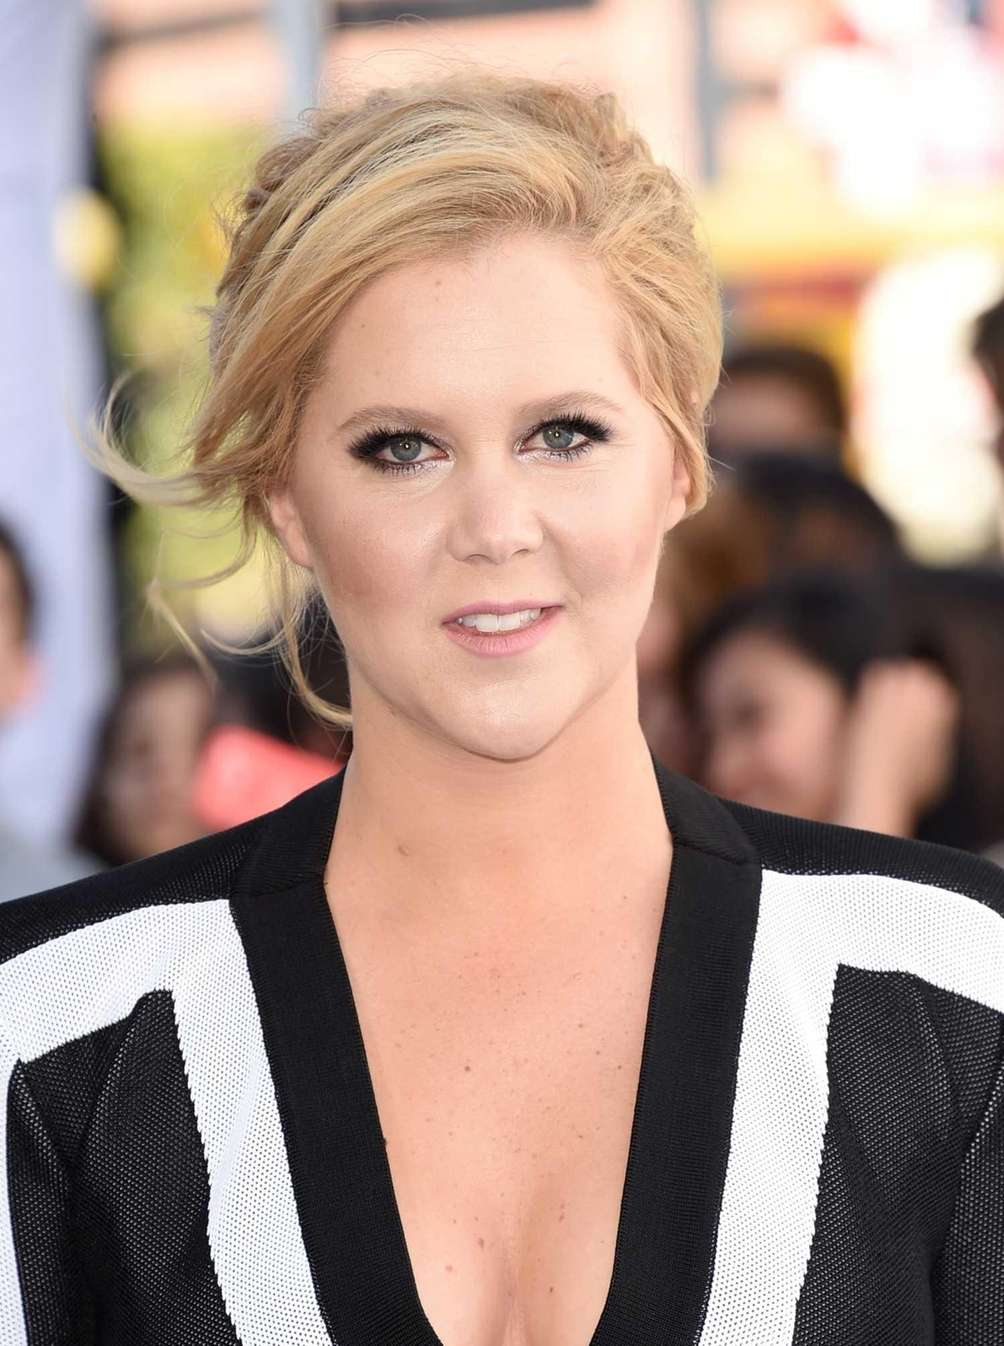 Comedian, writer, producer and actress Amy Schumer graduated